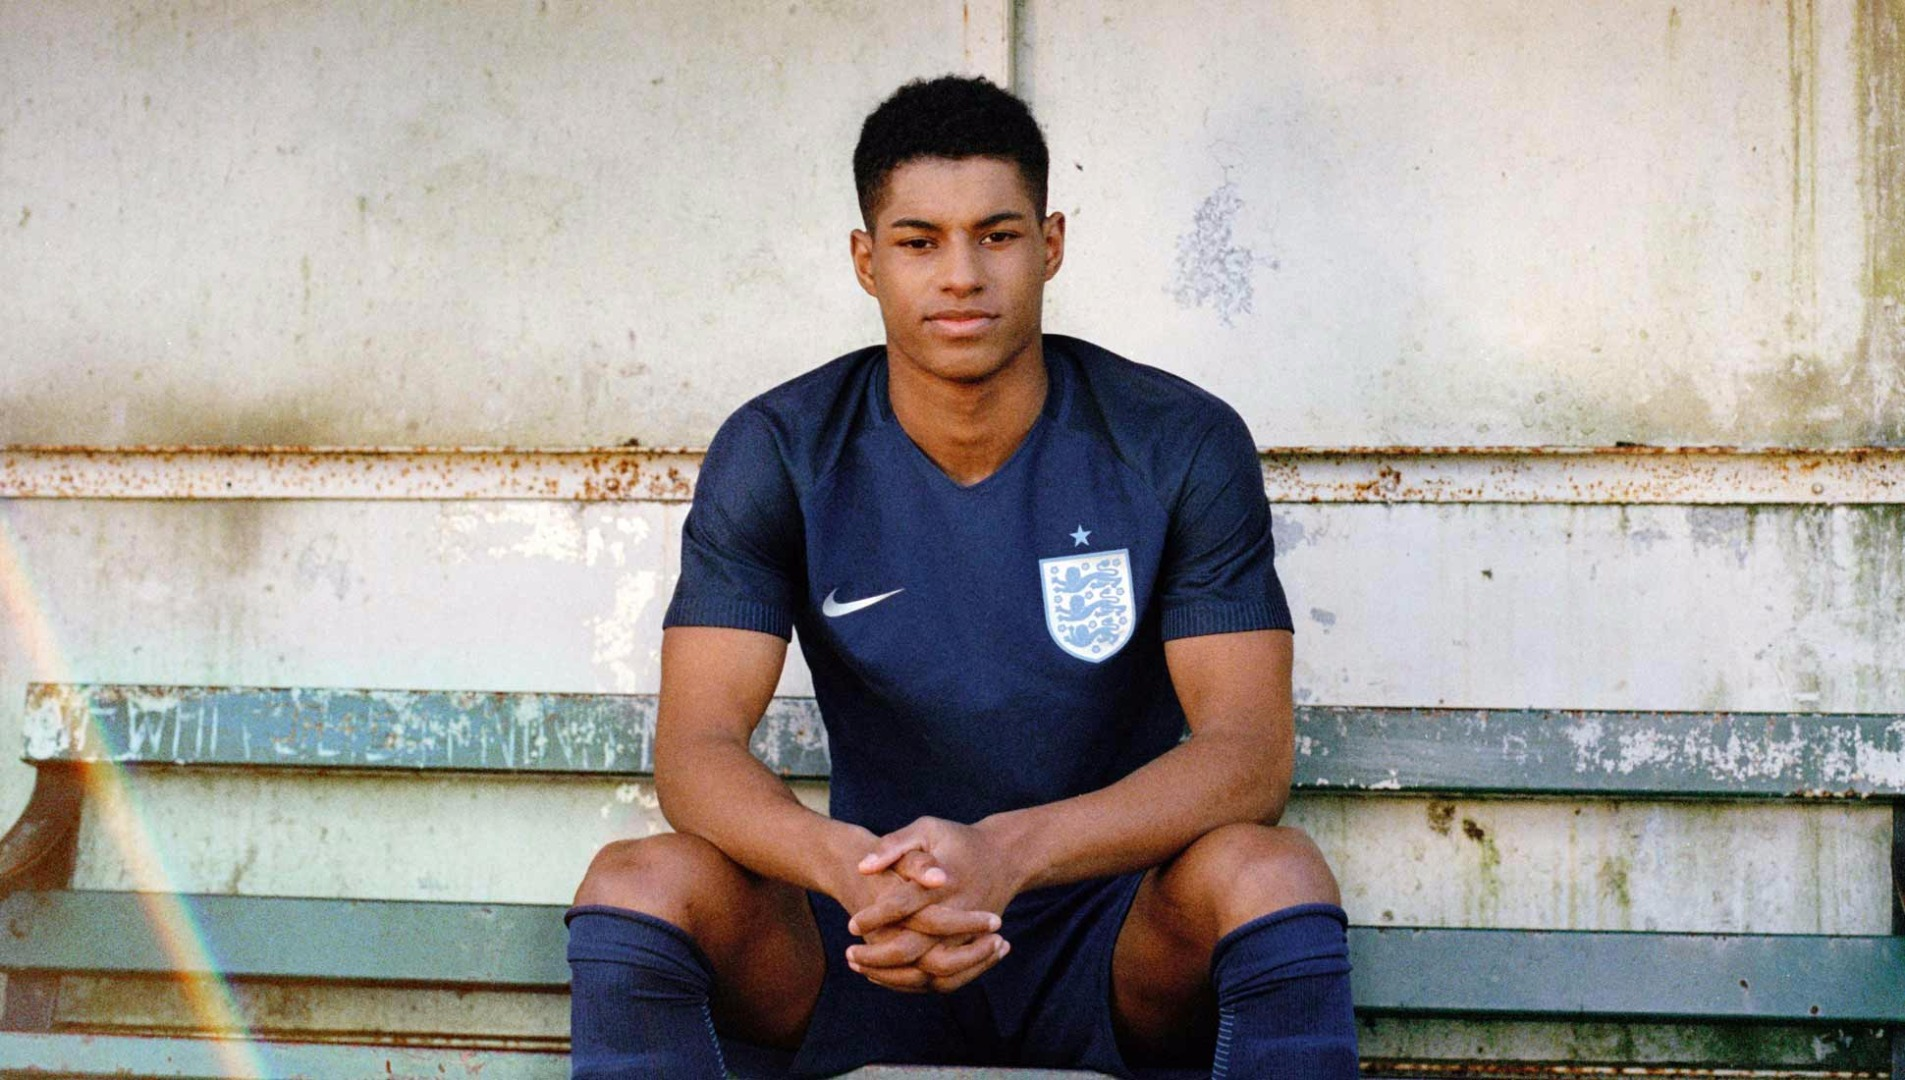 Nike Launch Navy Blue England Away Kit With Marcus Rashford Soccerbible